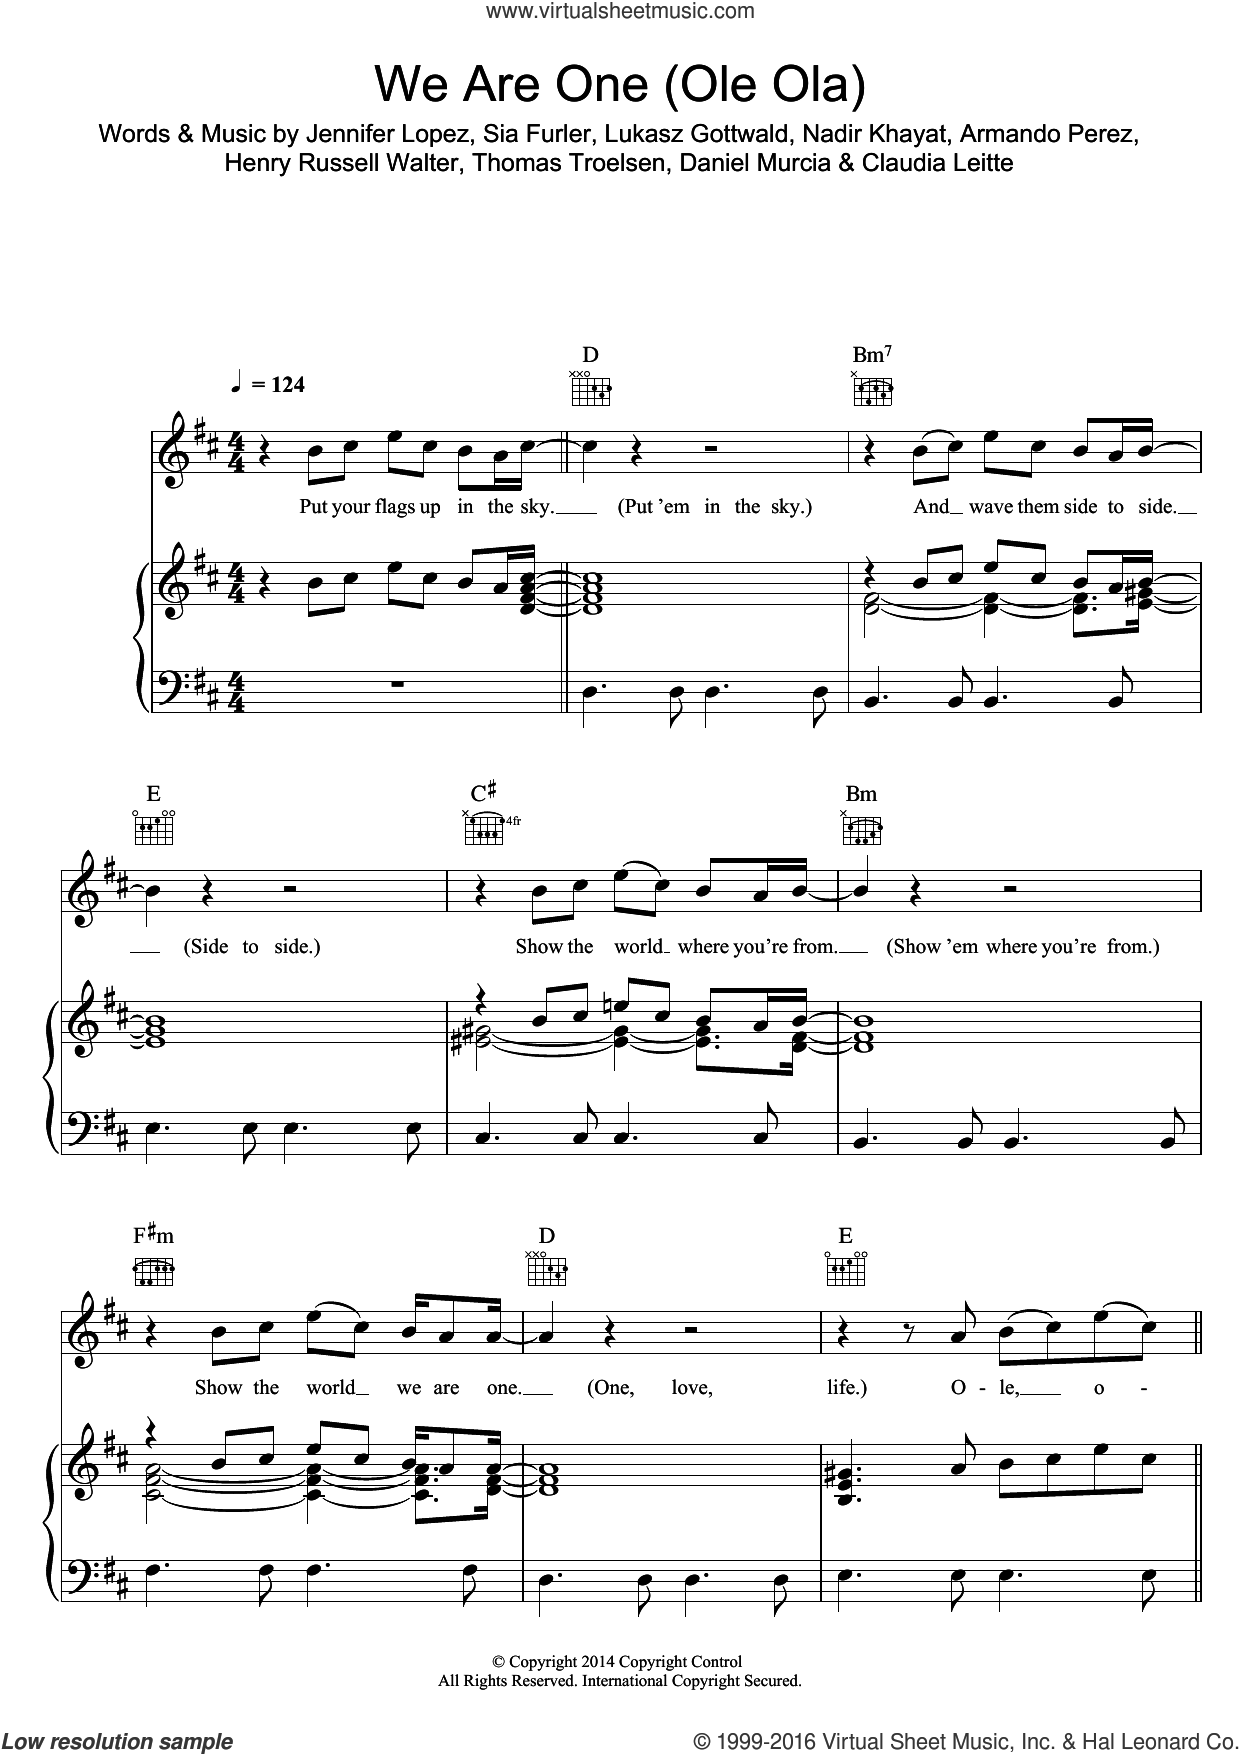 We Are One (Ole Ola) sheet music for voice, piano or guitar by Pitbull feat. Jennifer Lopez, Armando Perez, Claudia Leitte, Daniel Murcia, Henry Russell Walter, Jennifer Lopez, Lukasz Gottwald, Nadir Khayat, Sia Furler and Thomas Troelsen, intermediate skill level